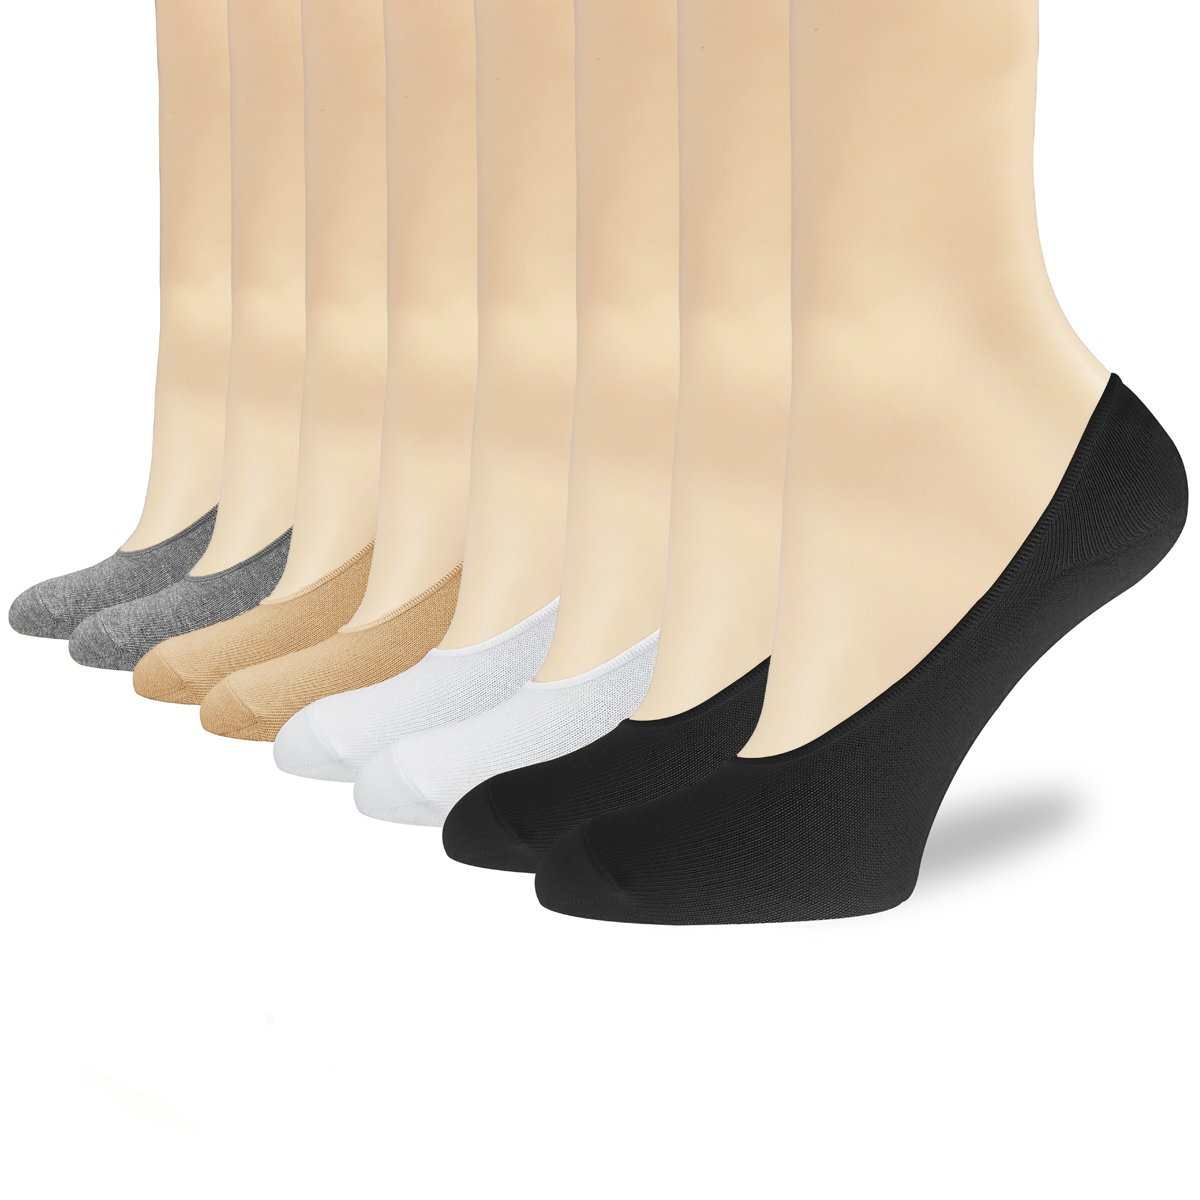 Women's No Show Socks 6 Pack Thin Casual Non Slip Cotton Invisible Sock Flat Boat Line with Gel Tab